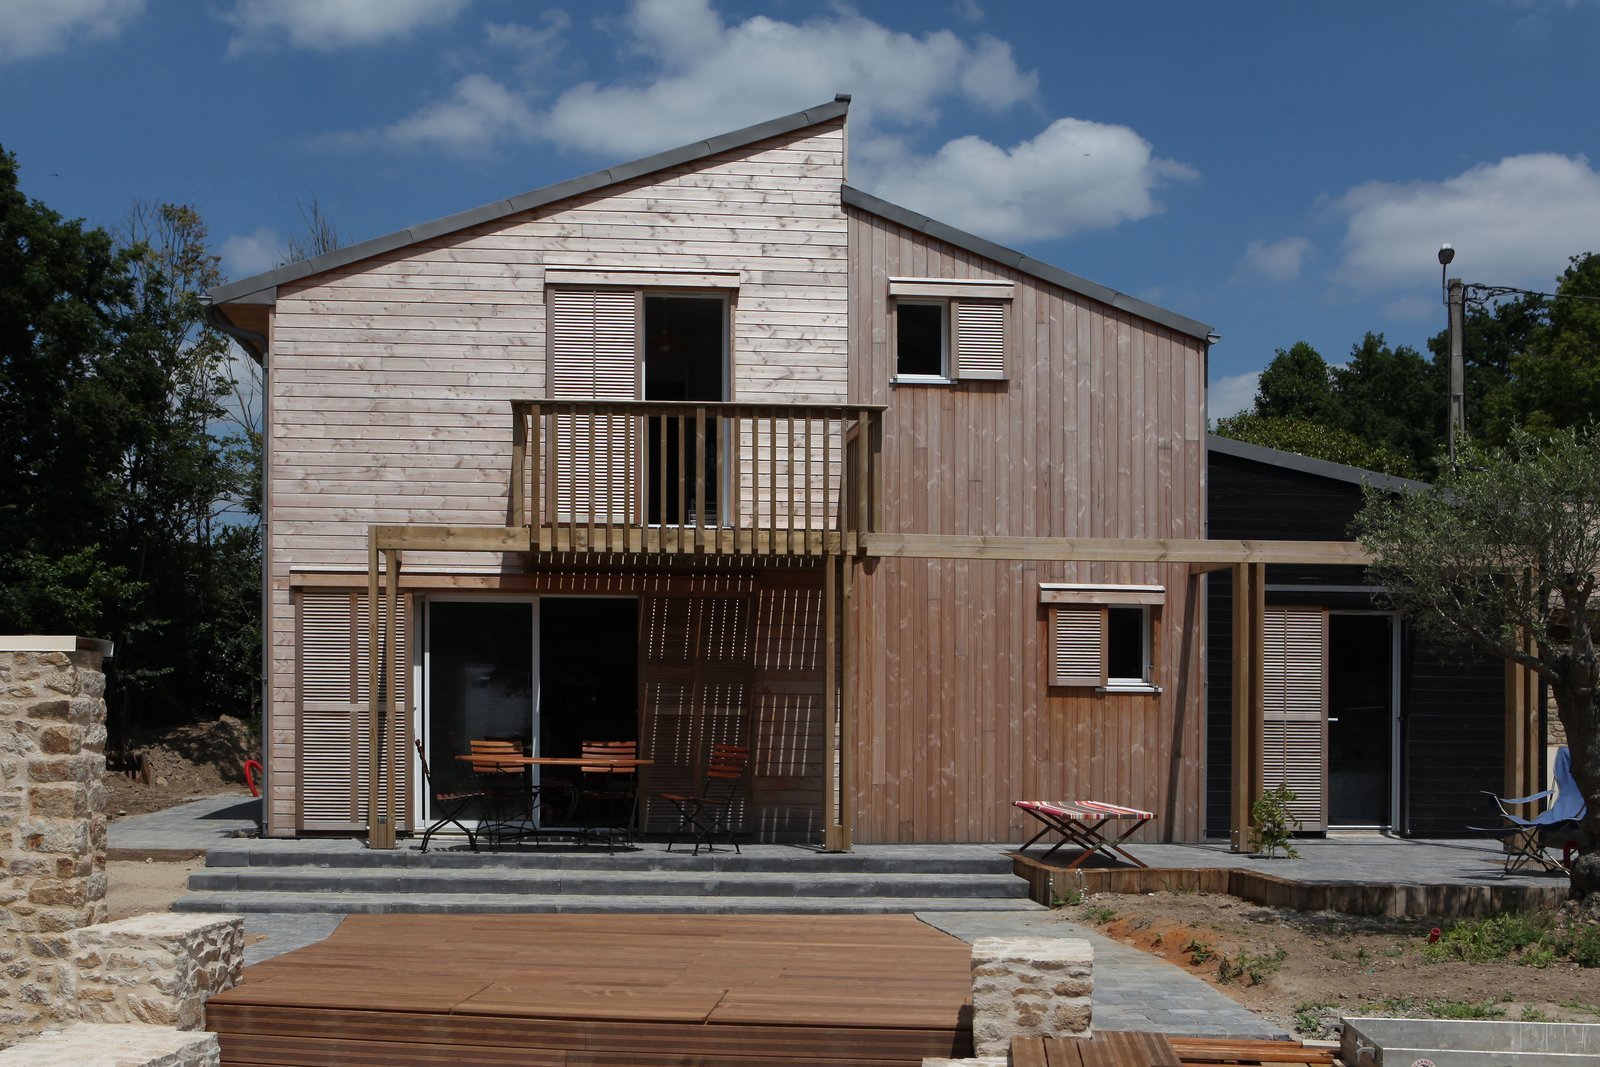 A bioclimatic house in Auray, Brittany , France Patrice Bideau  A bioclimatic house in Auray, Brittany, France by a.typique Patrice Bideau ( 2013 ) by Patrice Bideau